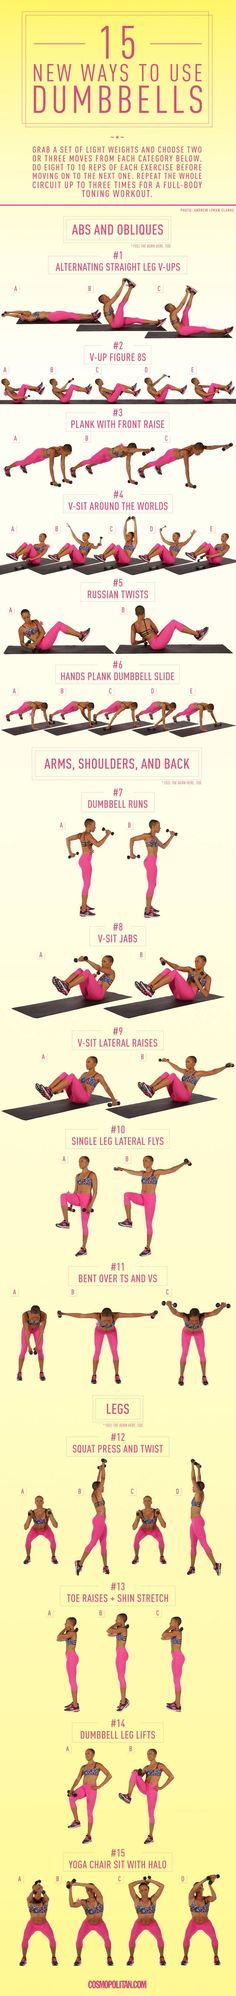 Get ready to sweat! #Fitness #Exercises